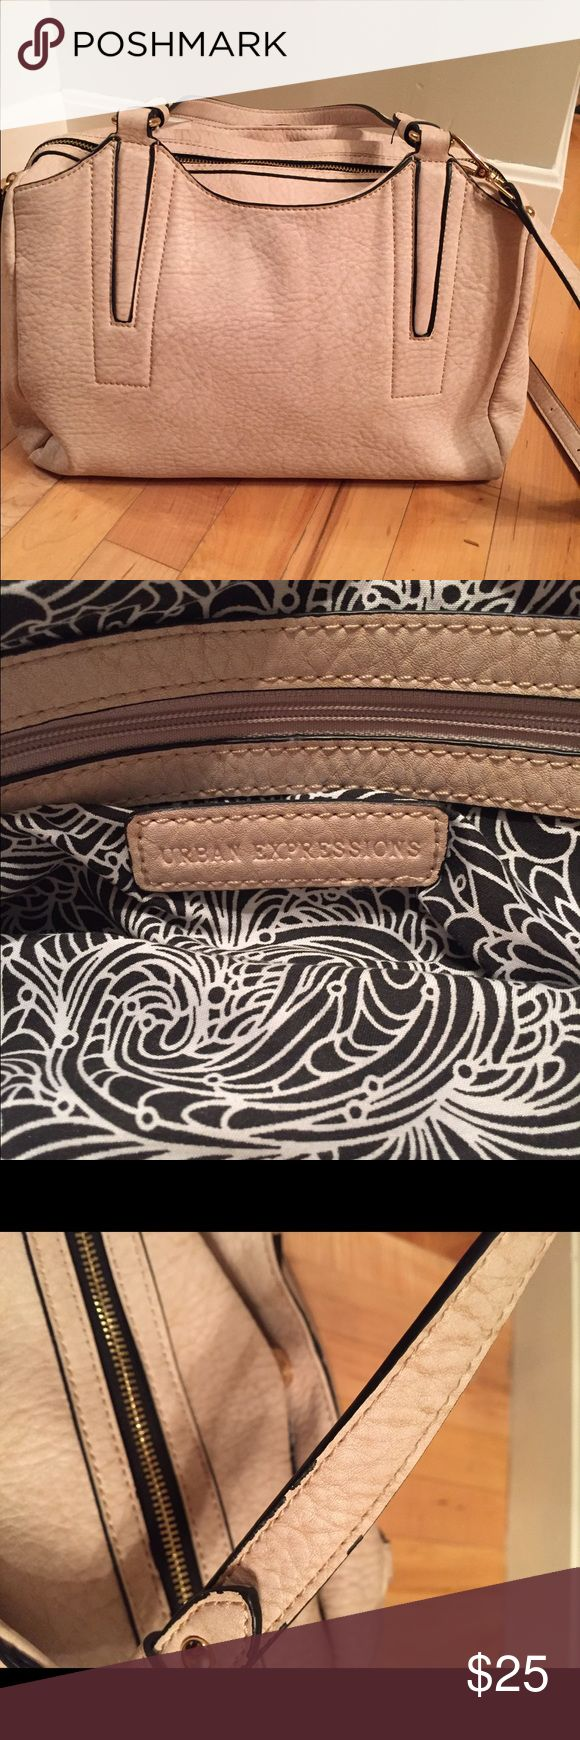 Urban expressions Luis Satchel Vegan purse. Originally purchased from Stitch Fix for $68. Stitch fix listed it as a cross body satchel. It can be used either way. I only used for a couple of months. Slight wear on the handles so discounted price. See pictures. Urban Expressions Bags Satchels